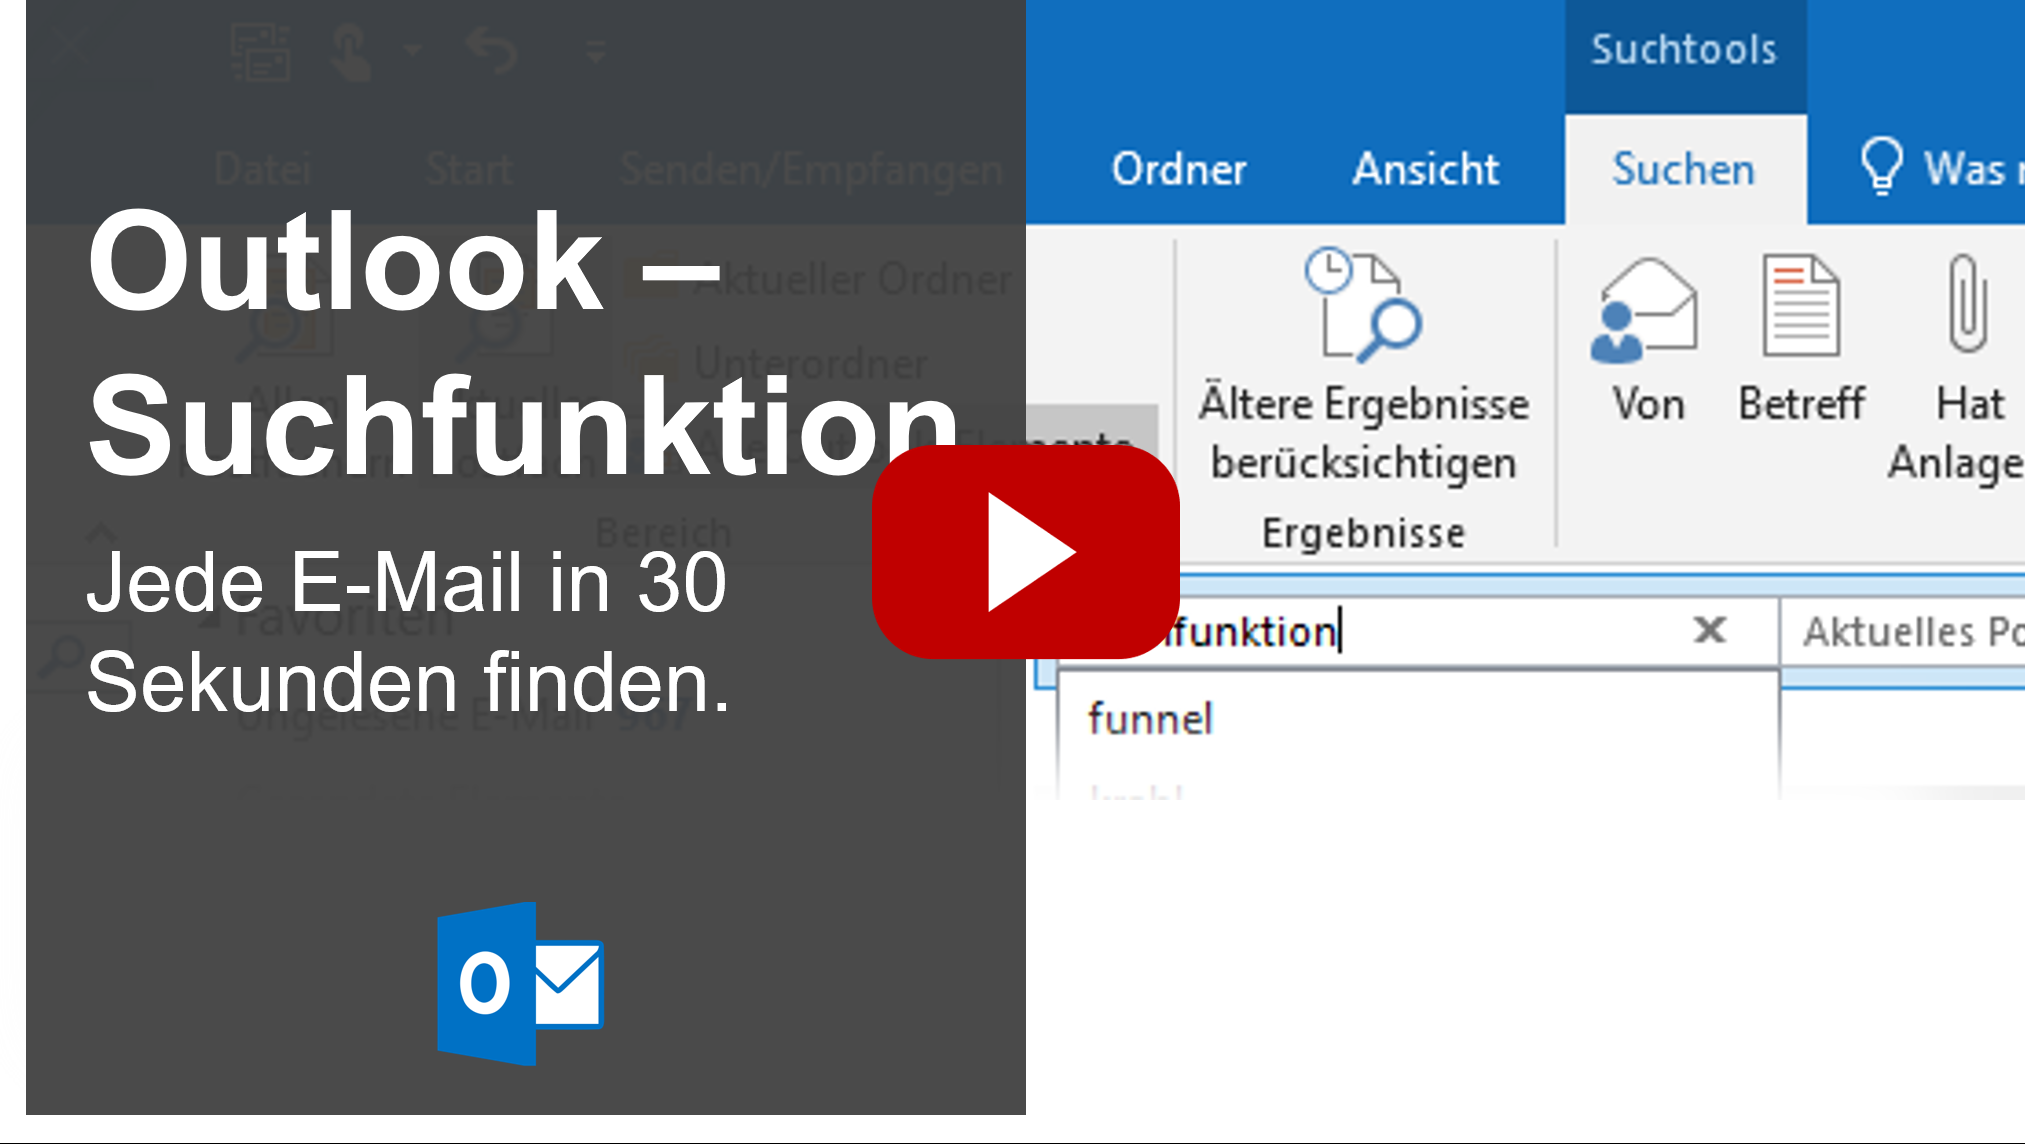 Outlook Suchfunktion